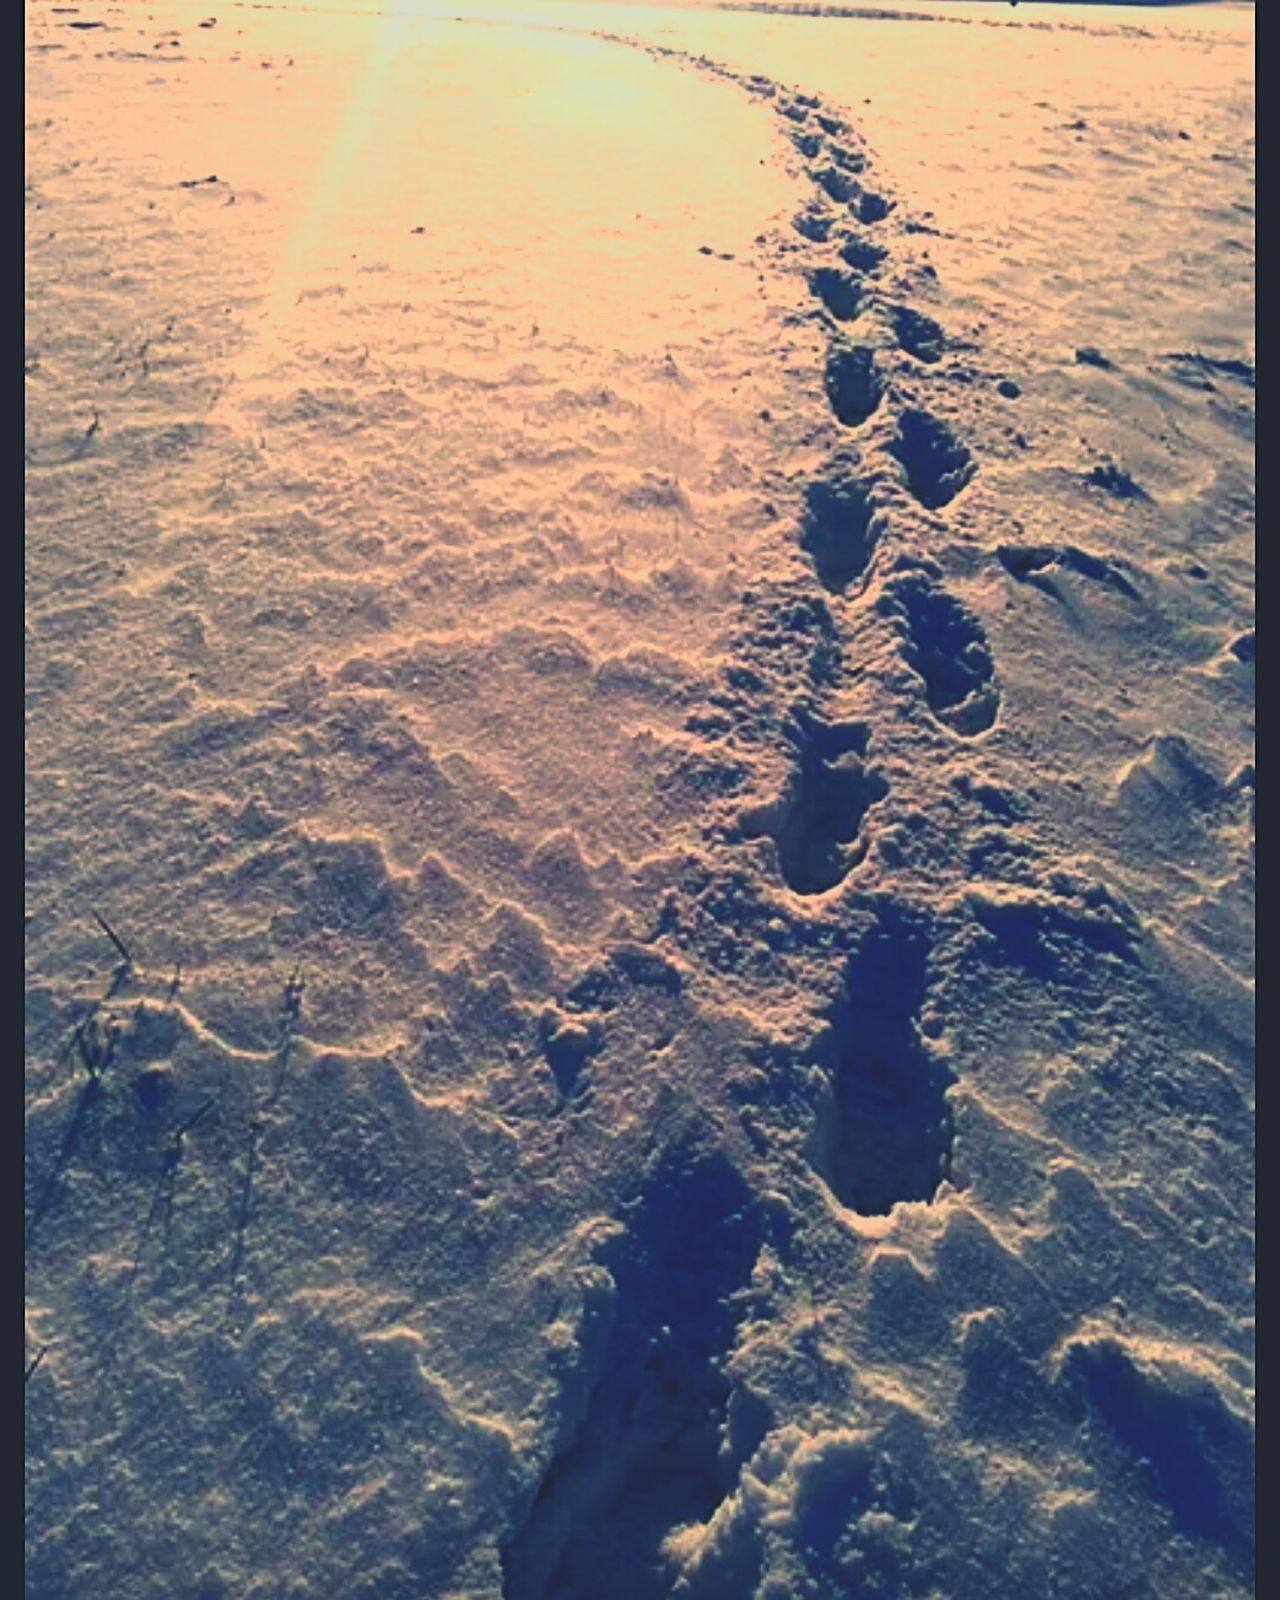 Made a heart in the snow Snow ❄ Sunlight ☀ Footprints In The Snow FootPrintsInTheSnow Footprints Half Of My Heart Snowsnowsnow.  Heart ❤ My Heart Six Inches Deep Snow